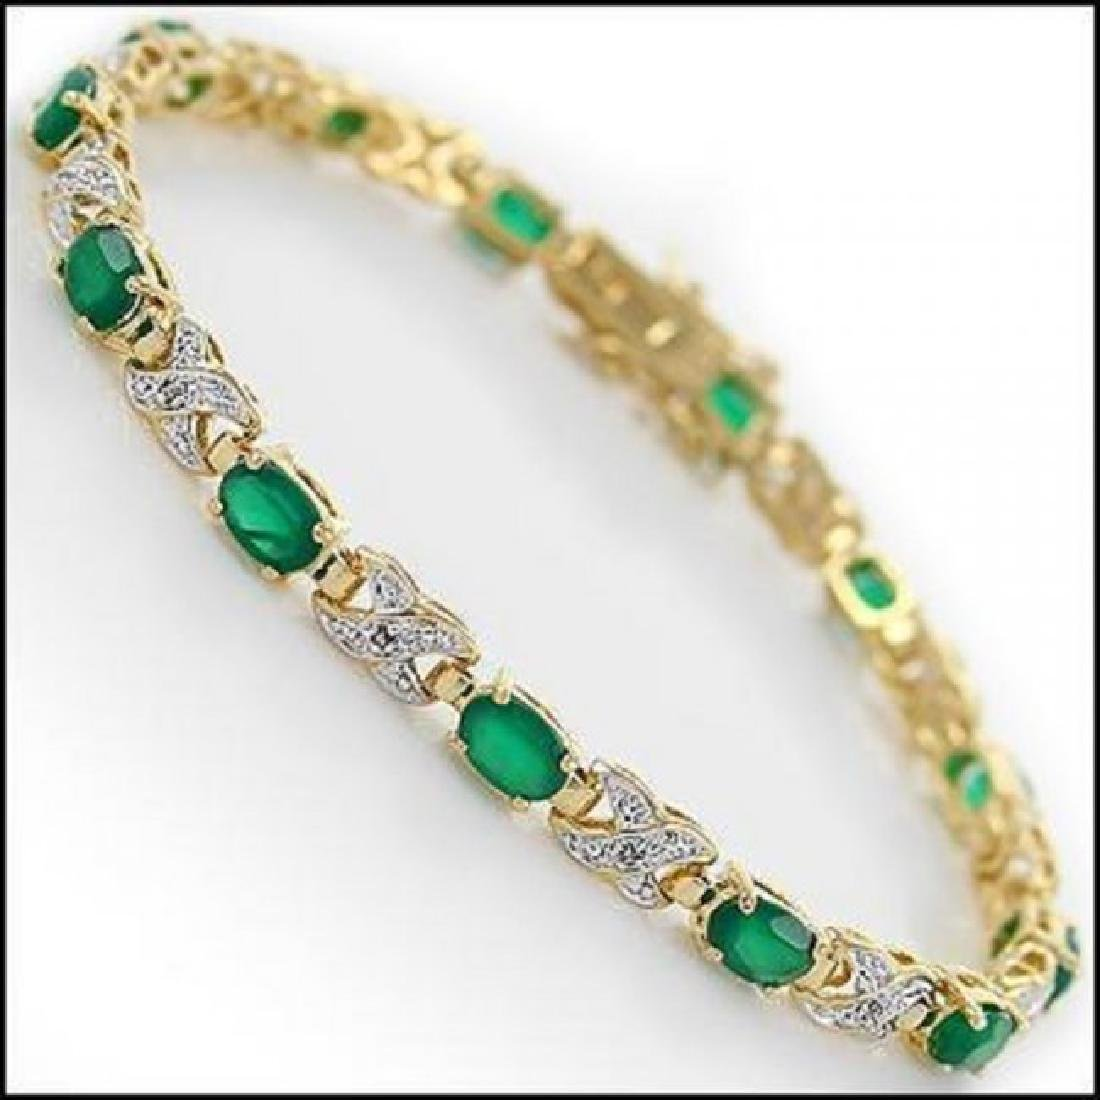 8.84 CT Green Agate & Diamond Designer Bracelet $1395